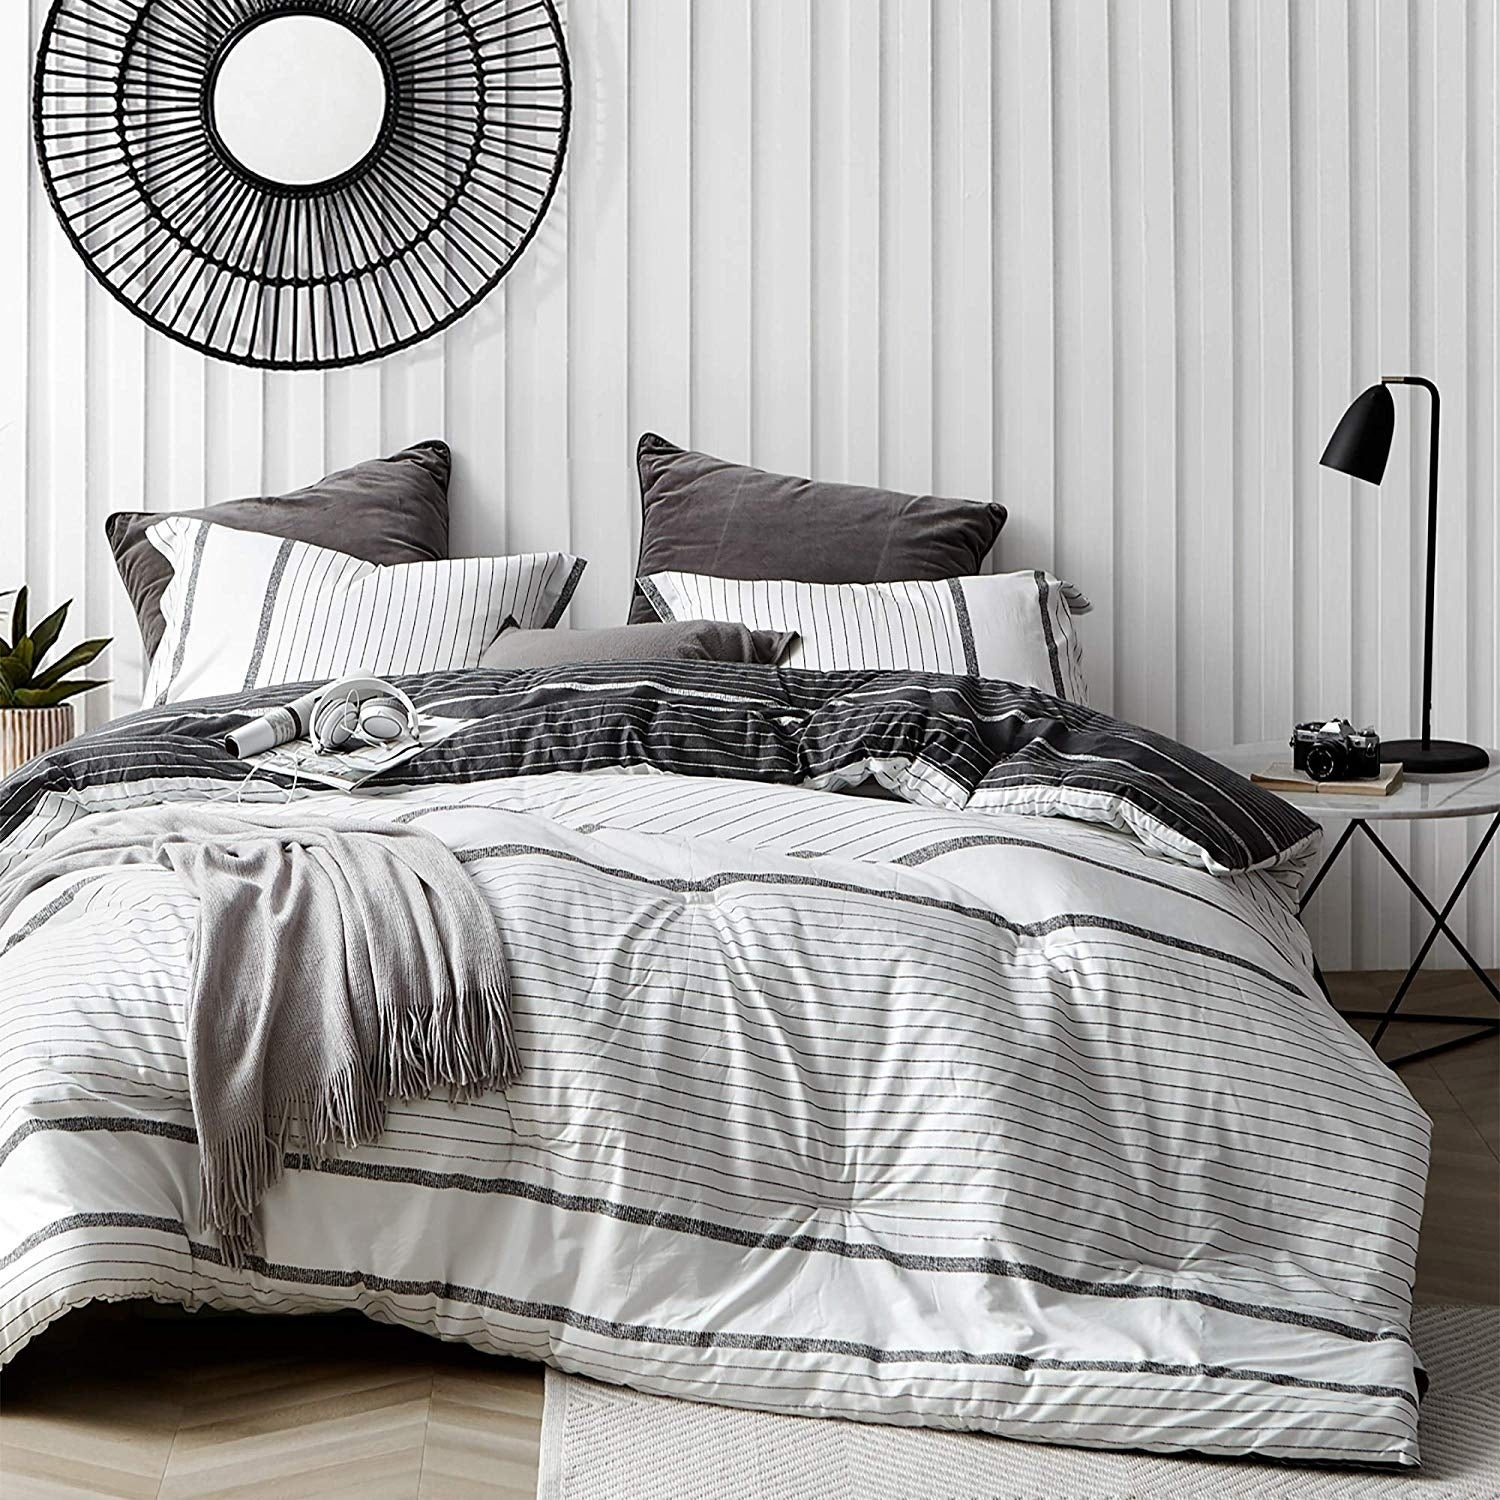 Kappel Black And White Stripes Comforter 100 Cotton On Sale Overstock 29238345